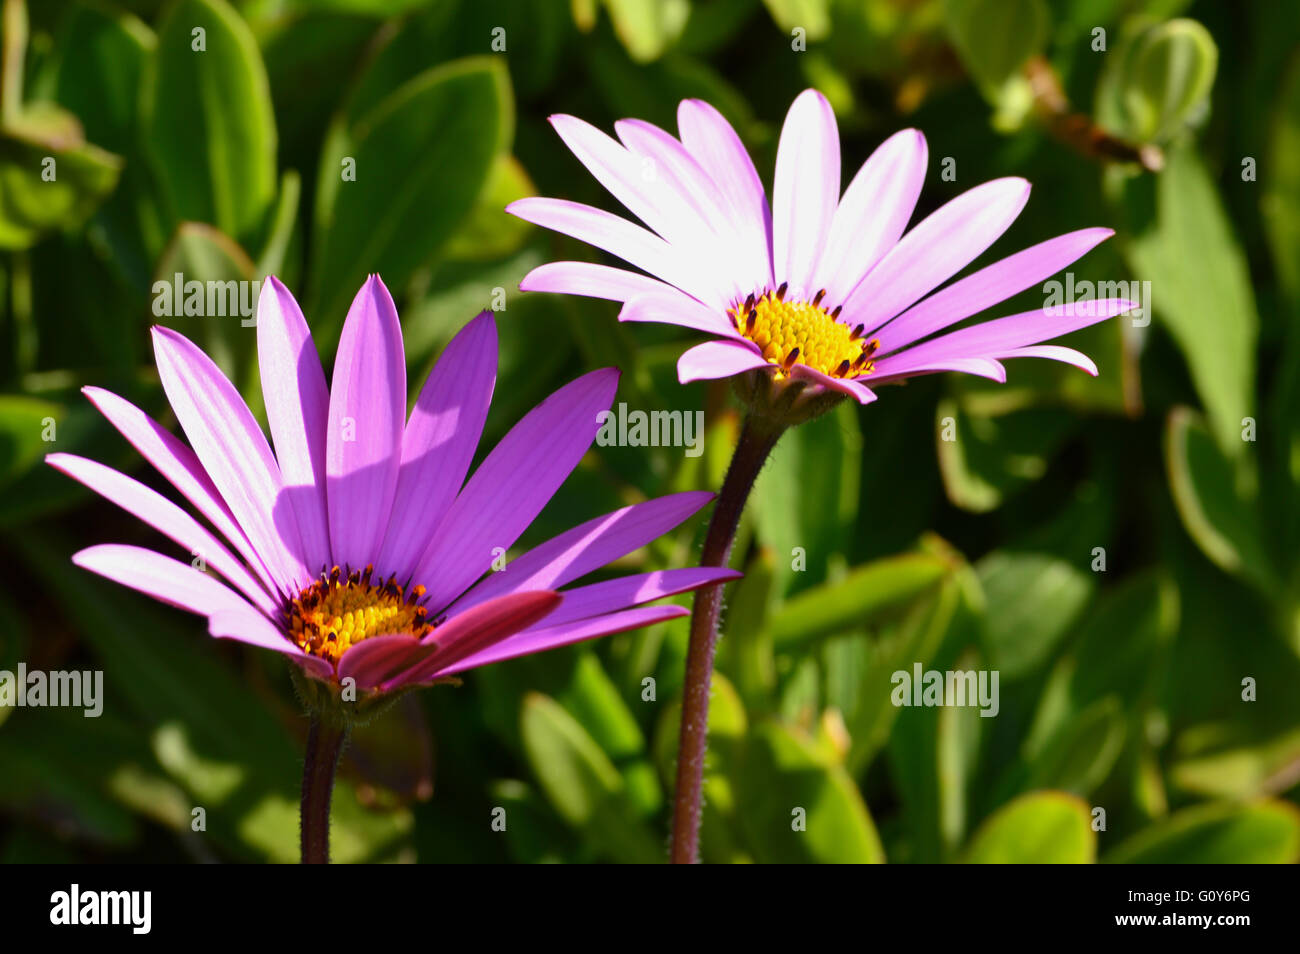 Osteospermum Pink Daisy Like Flower Stock Photos Osteospermum Pink